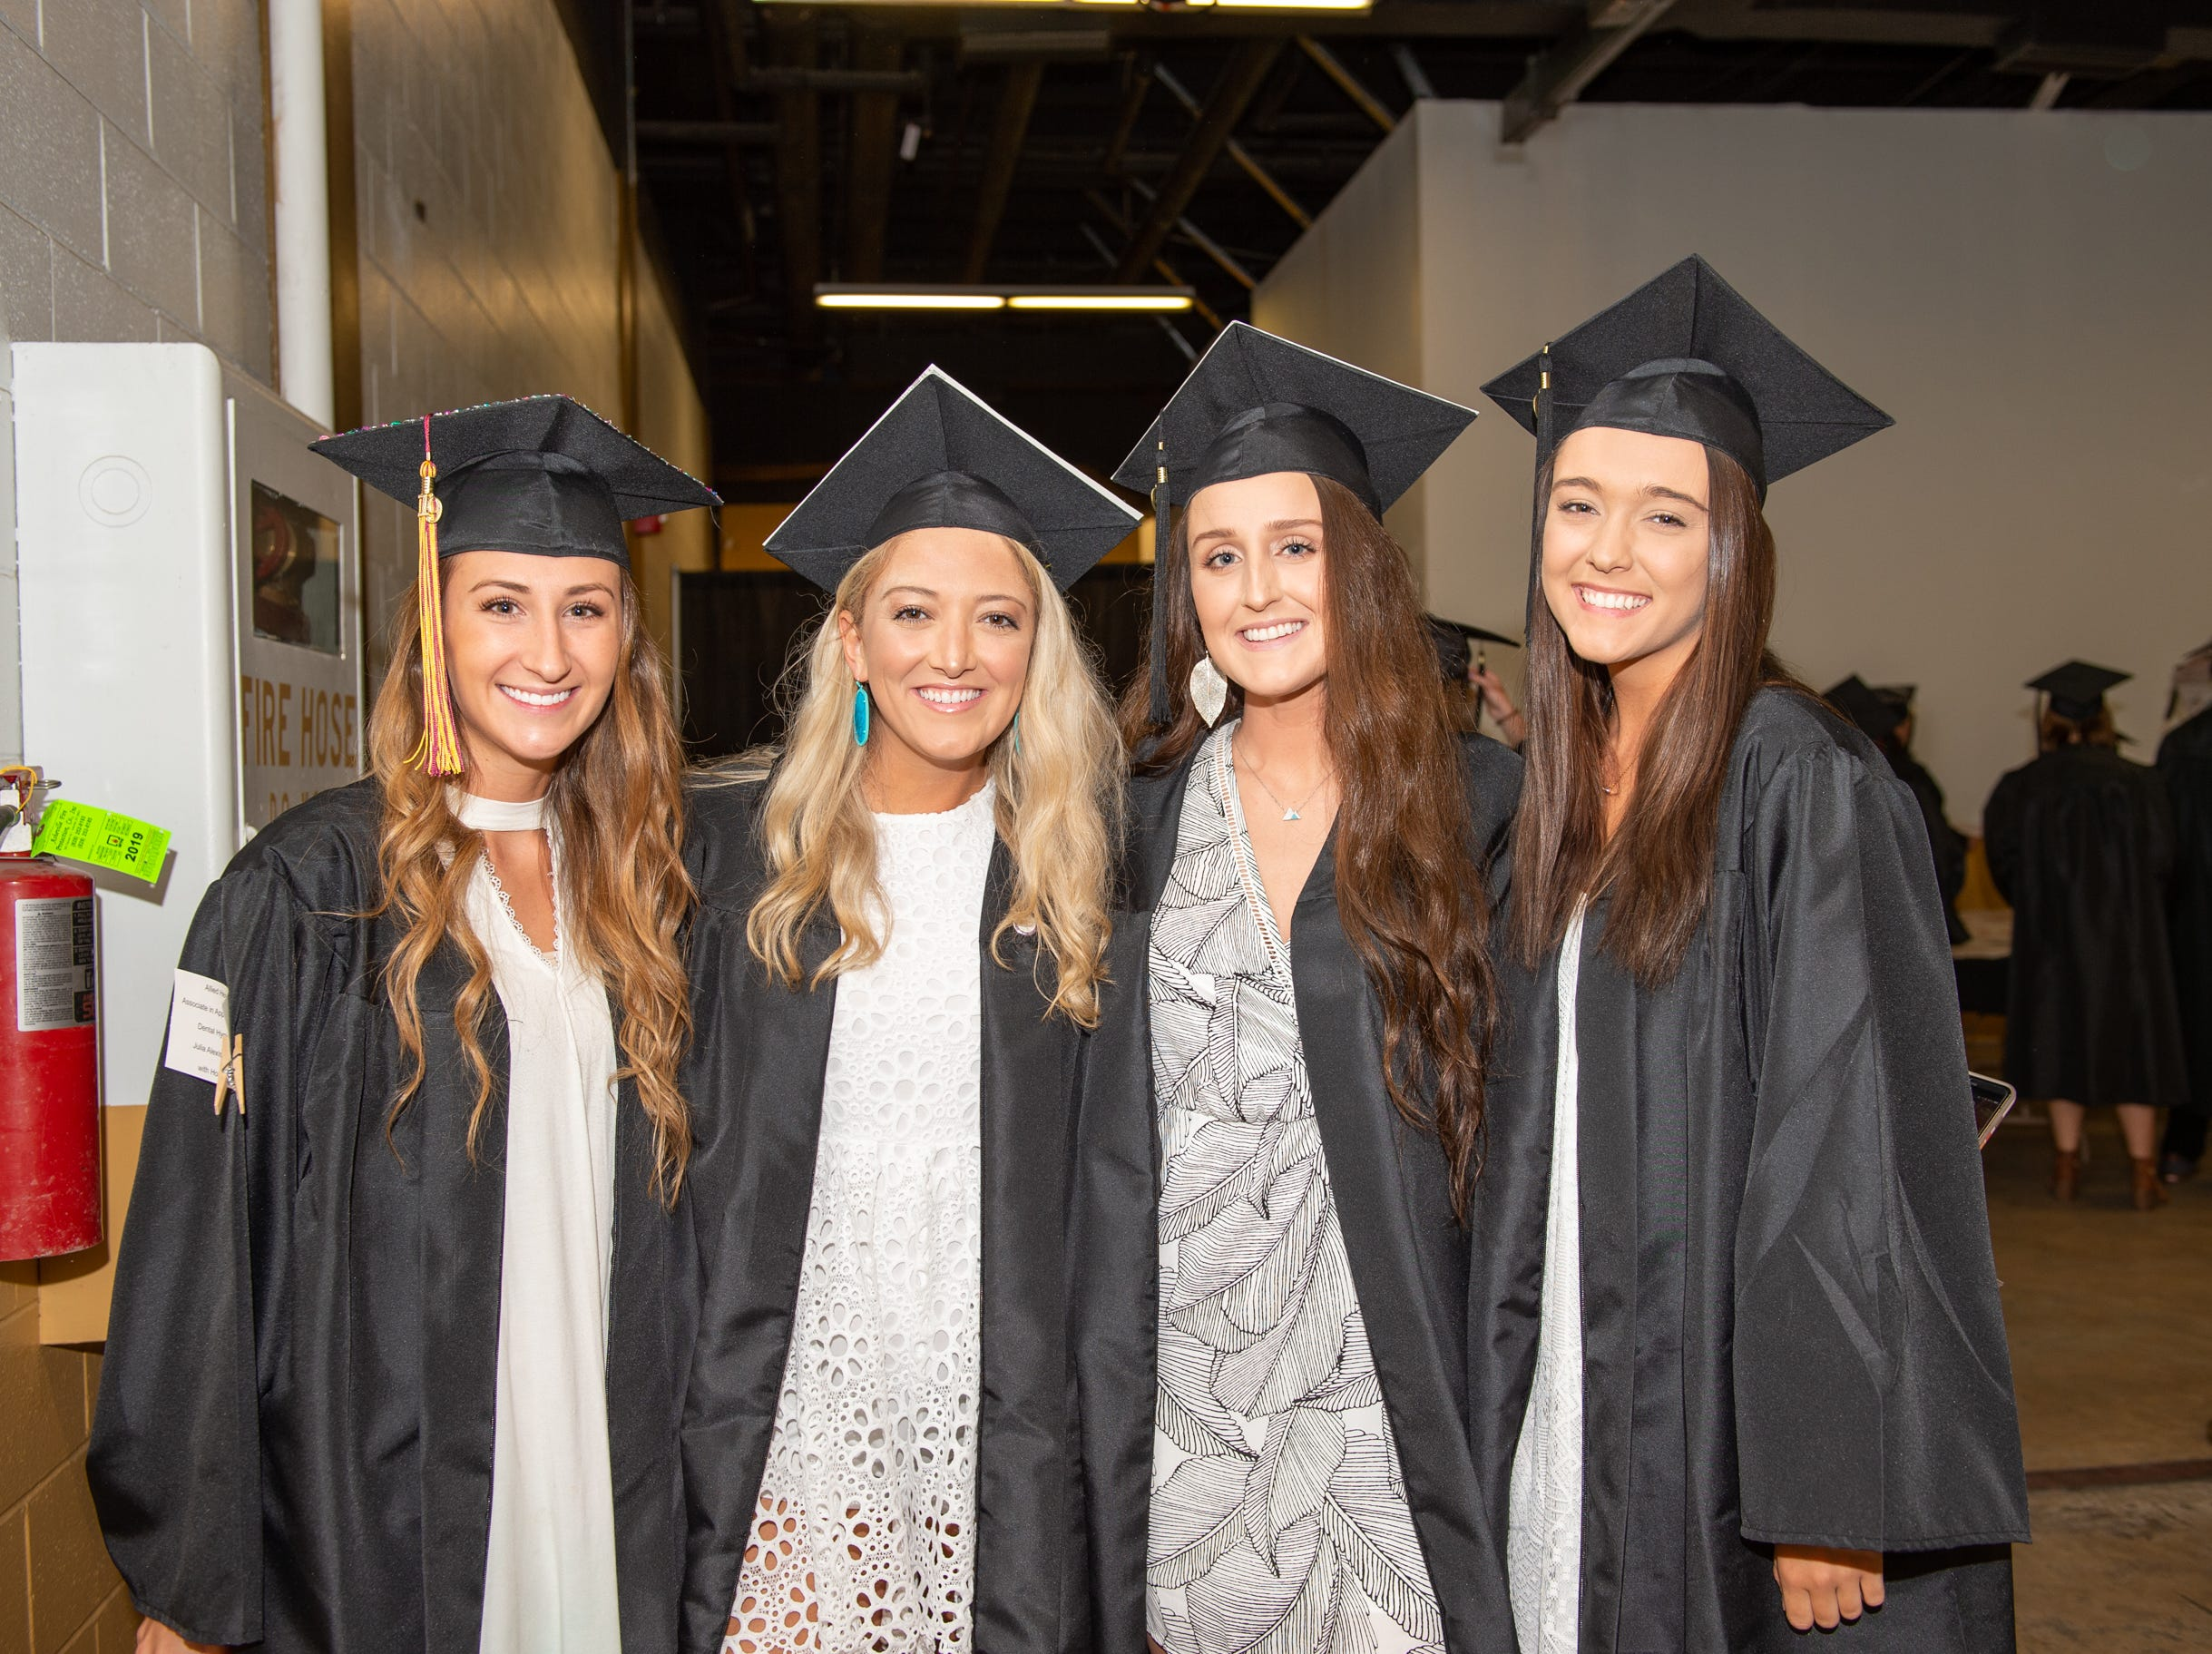 Lexi Aiken, Alyssa Brown, Brooke Walker, and Emily Morgan looking forward to graduating from A-B Tech on May 11, 2019.